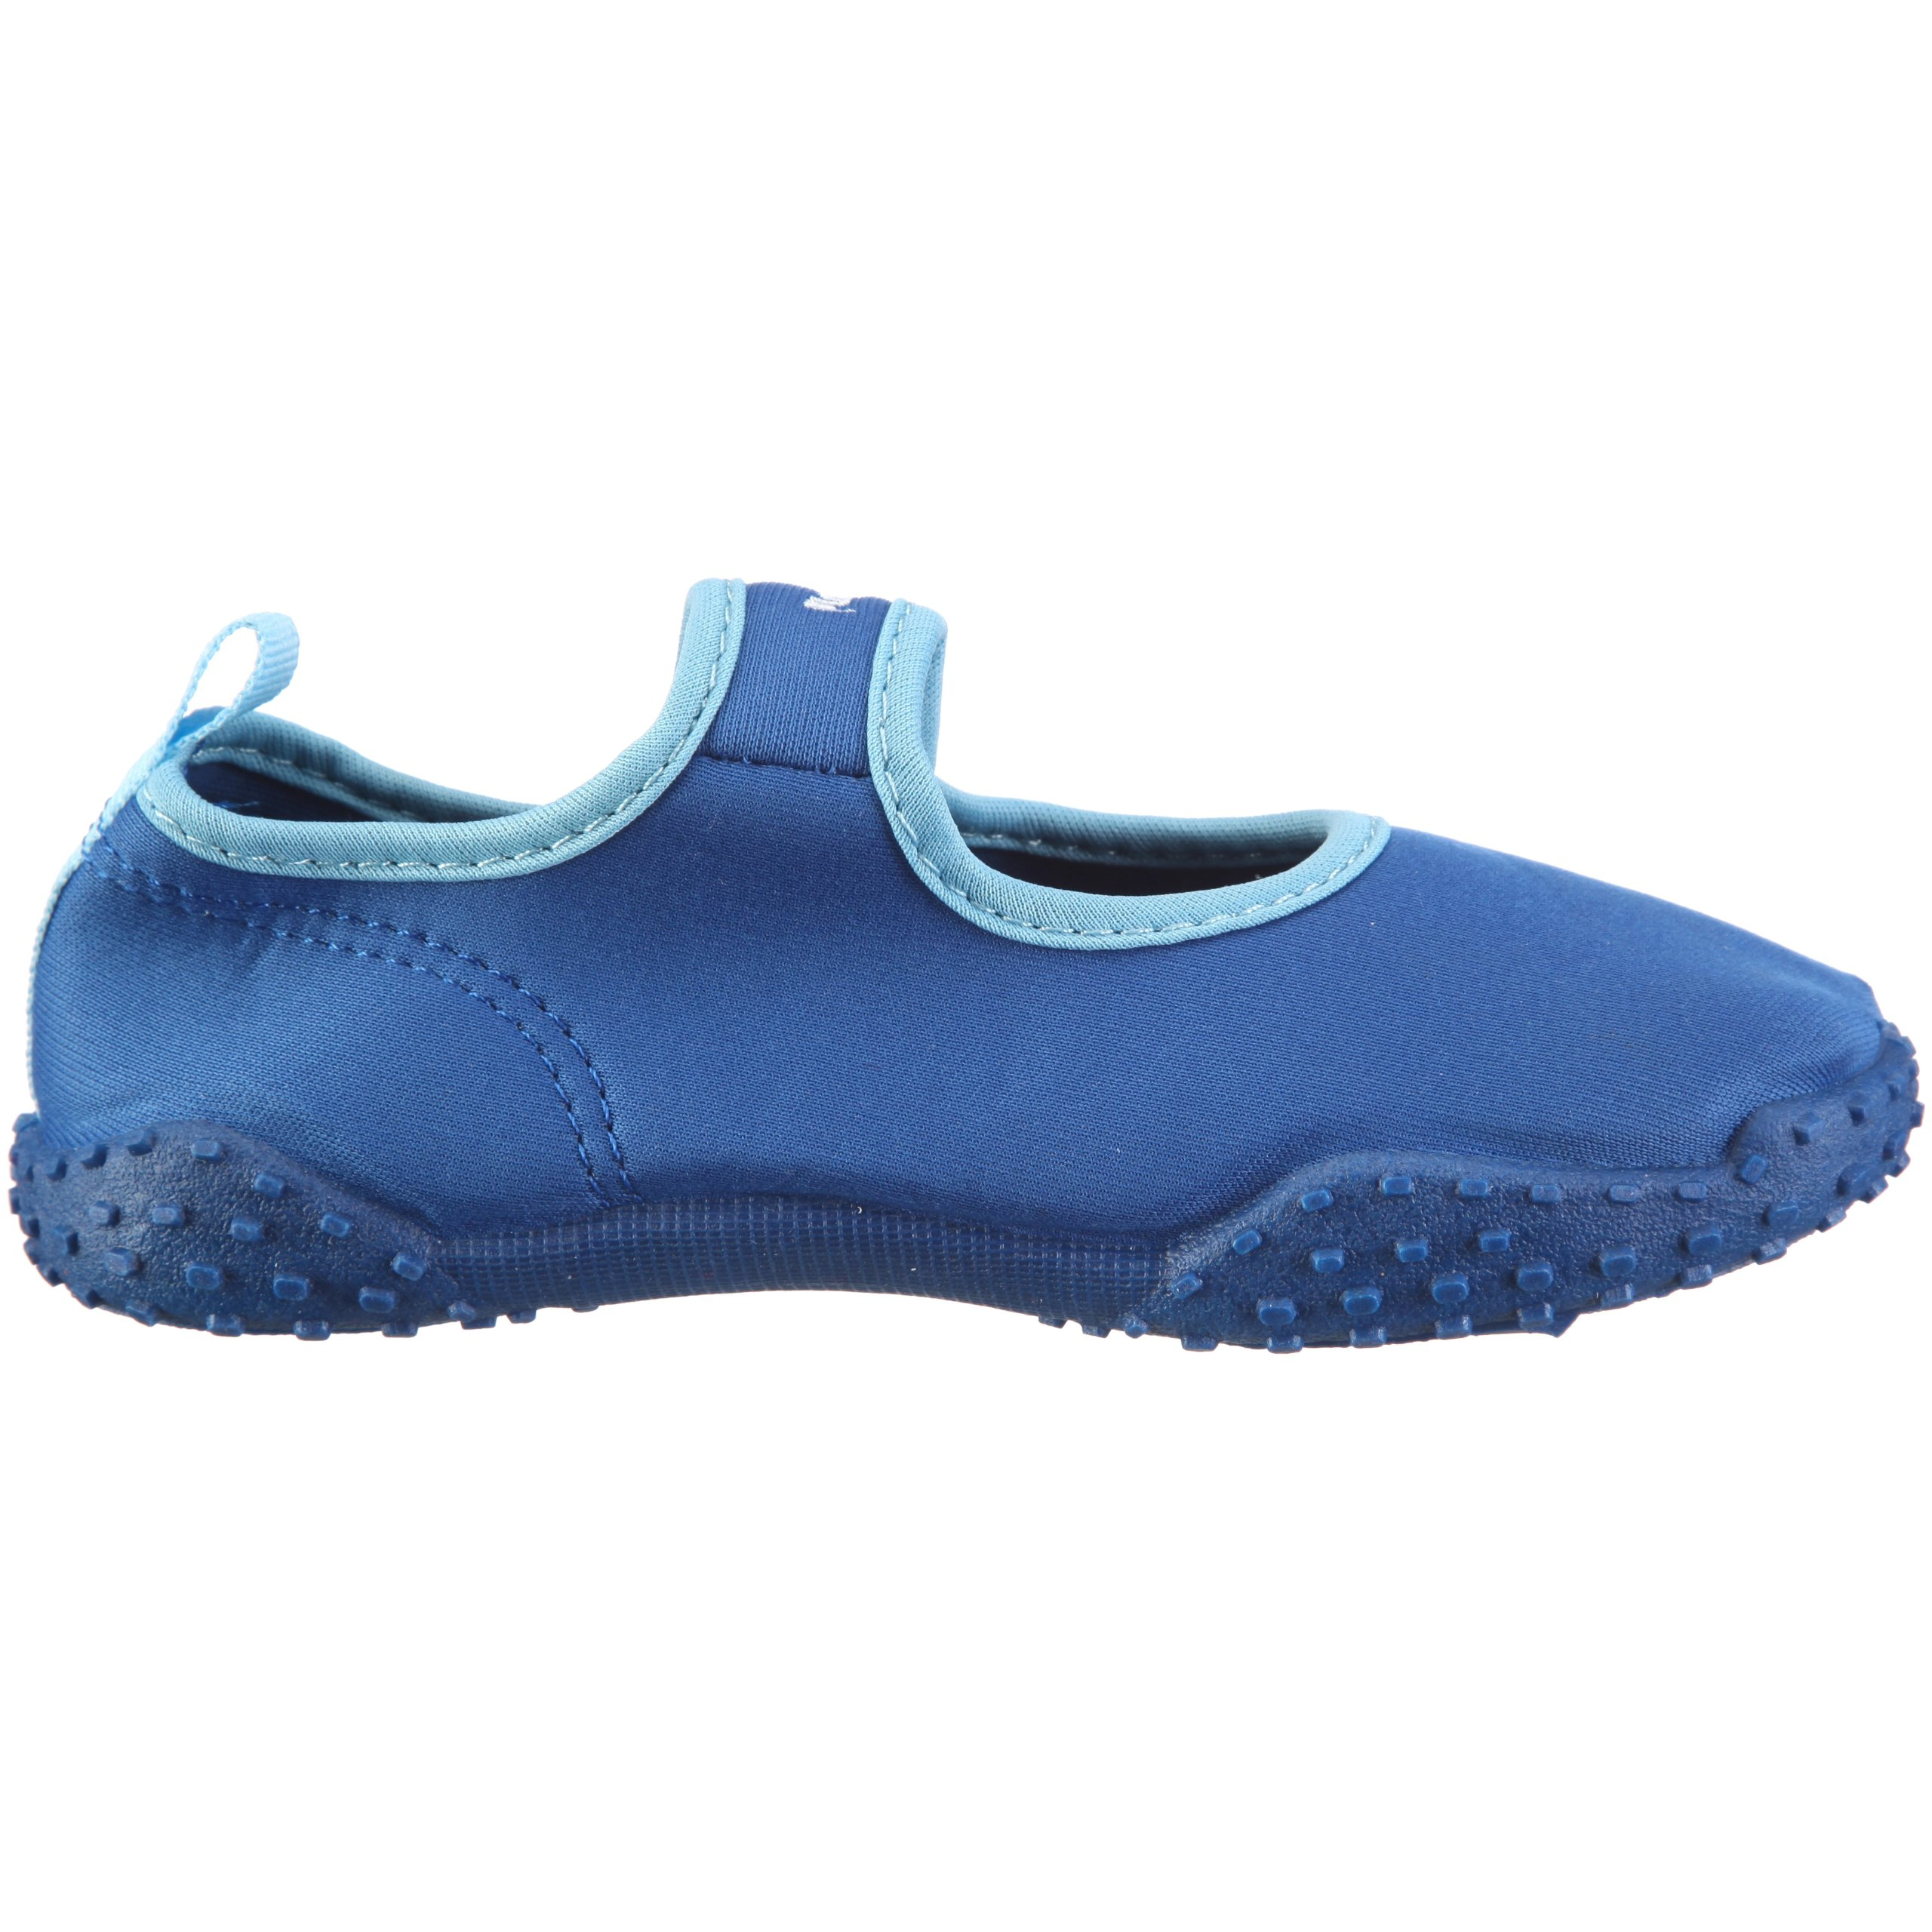 Playshoes Children's Aqua Beach Water Shoes (11.5 M US Little Kid, Blue) by Playshoes (Image #6)